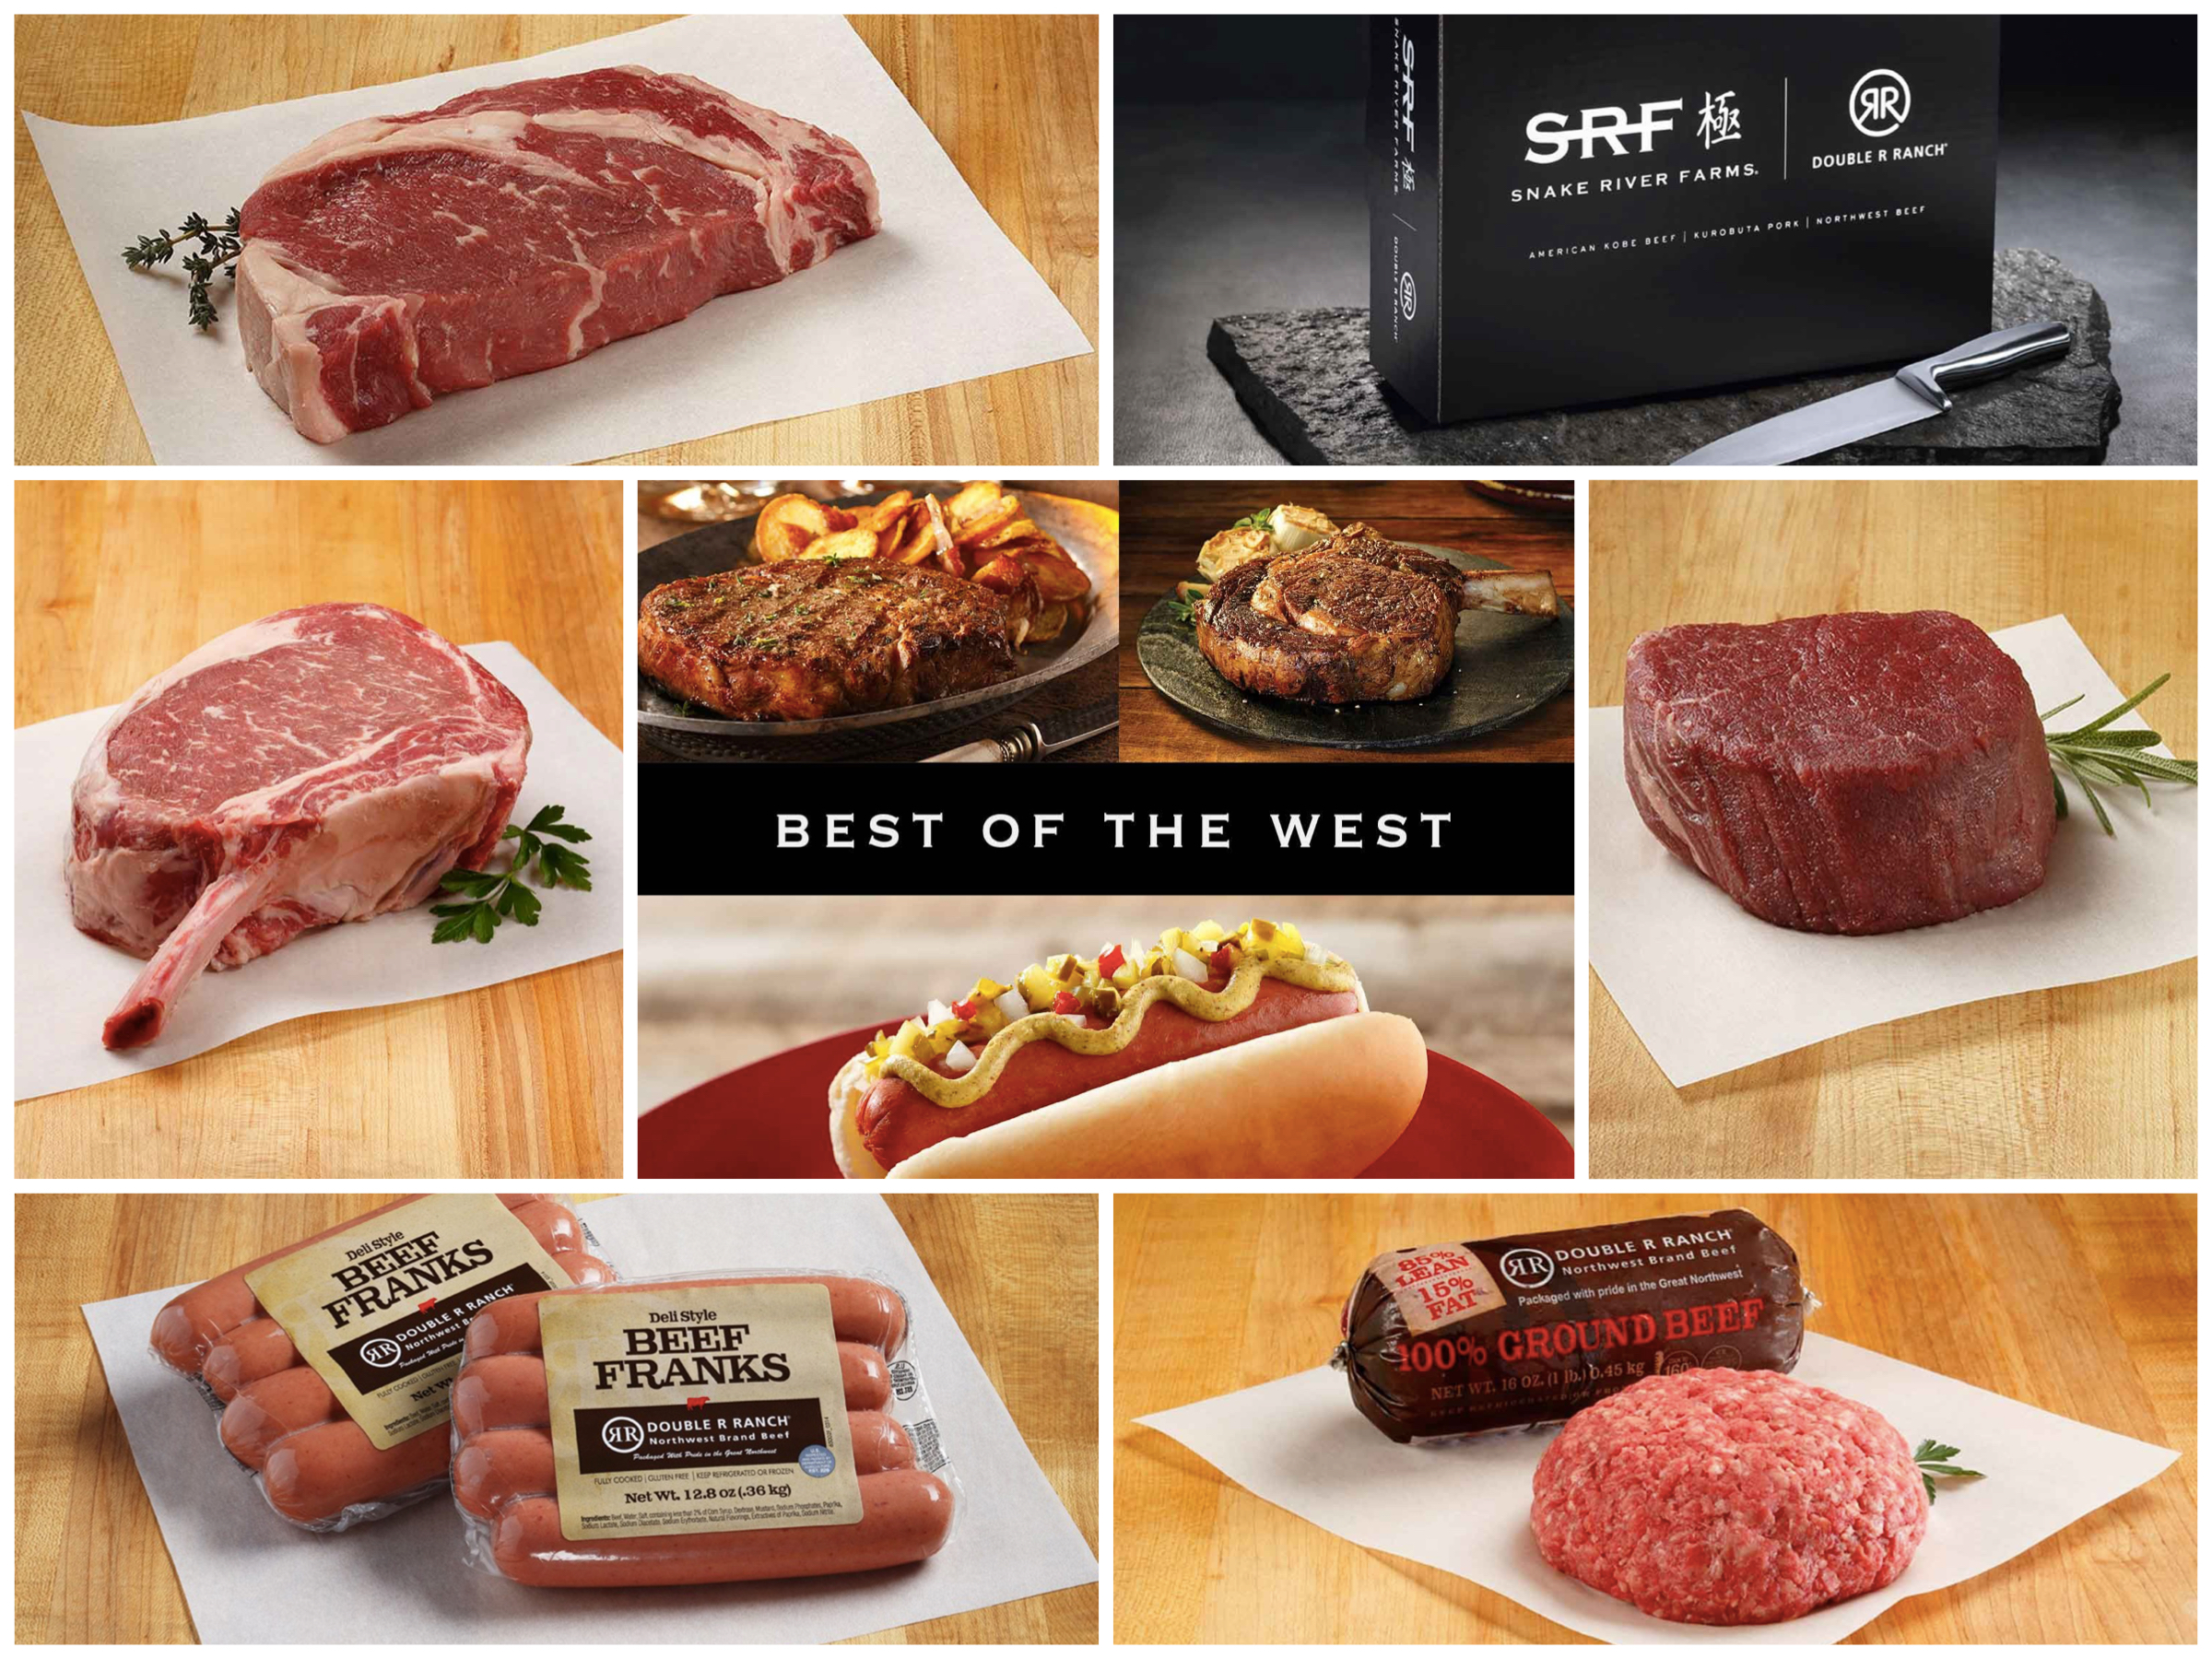 Best of the West Steaks Ground Beef Hotdogs Snake River Farms Company Holiday Gifts, Best Luxury Company Holiday Gifts